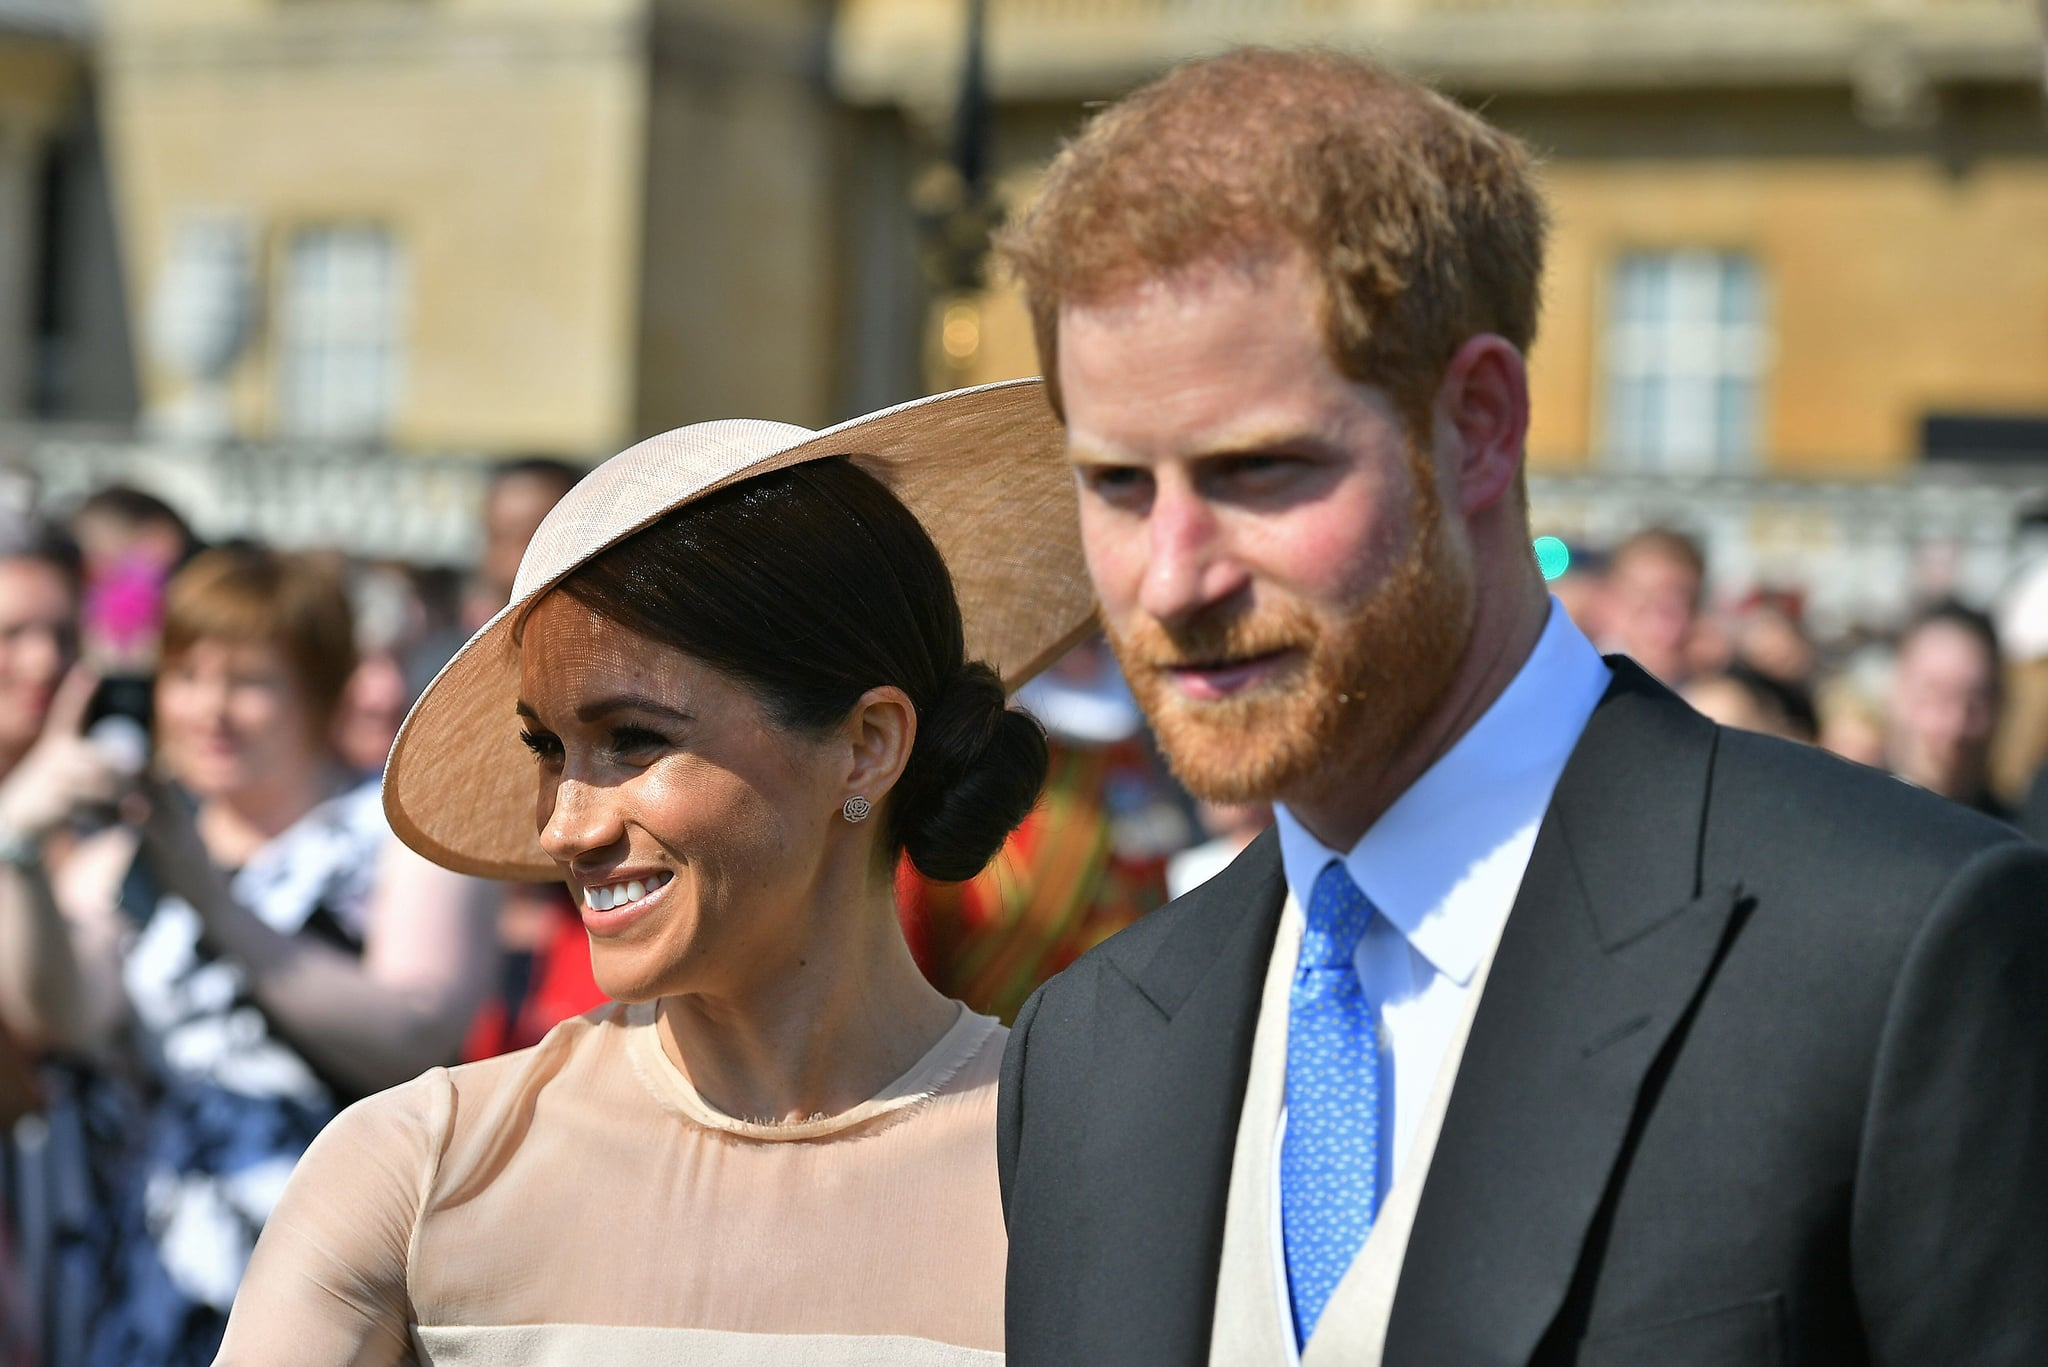 Britain's Prince Harry, Duke of Sussex (R), and his new wife, Britain's Meghan, Duchess of Sussex, attend the Prince of Wales's 70th Birthday Garden Party at Buckingham Palace in London on May 22, 2018. - The Prince of Wales and The Duchess of Cornwall hosted a Garden Party to celebrate the work of The Prince's Charities in the year of Prince Charles's 70th Birthday. (Photo by Dominic Lipinski / POOL / AFP)        (Photo credit should read DOMINIC LIPINSKI/AFP/Getty Images)